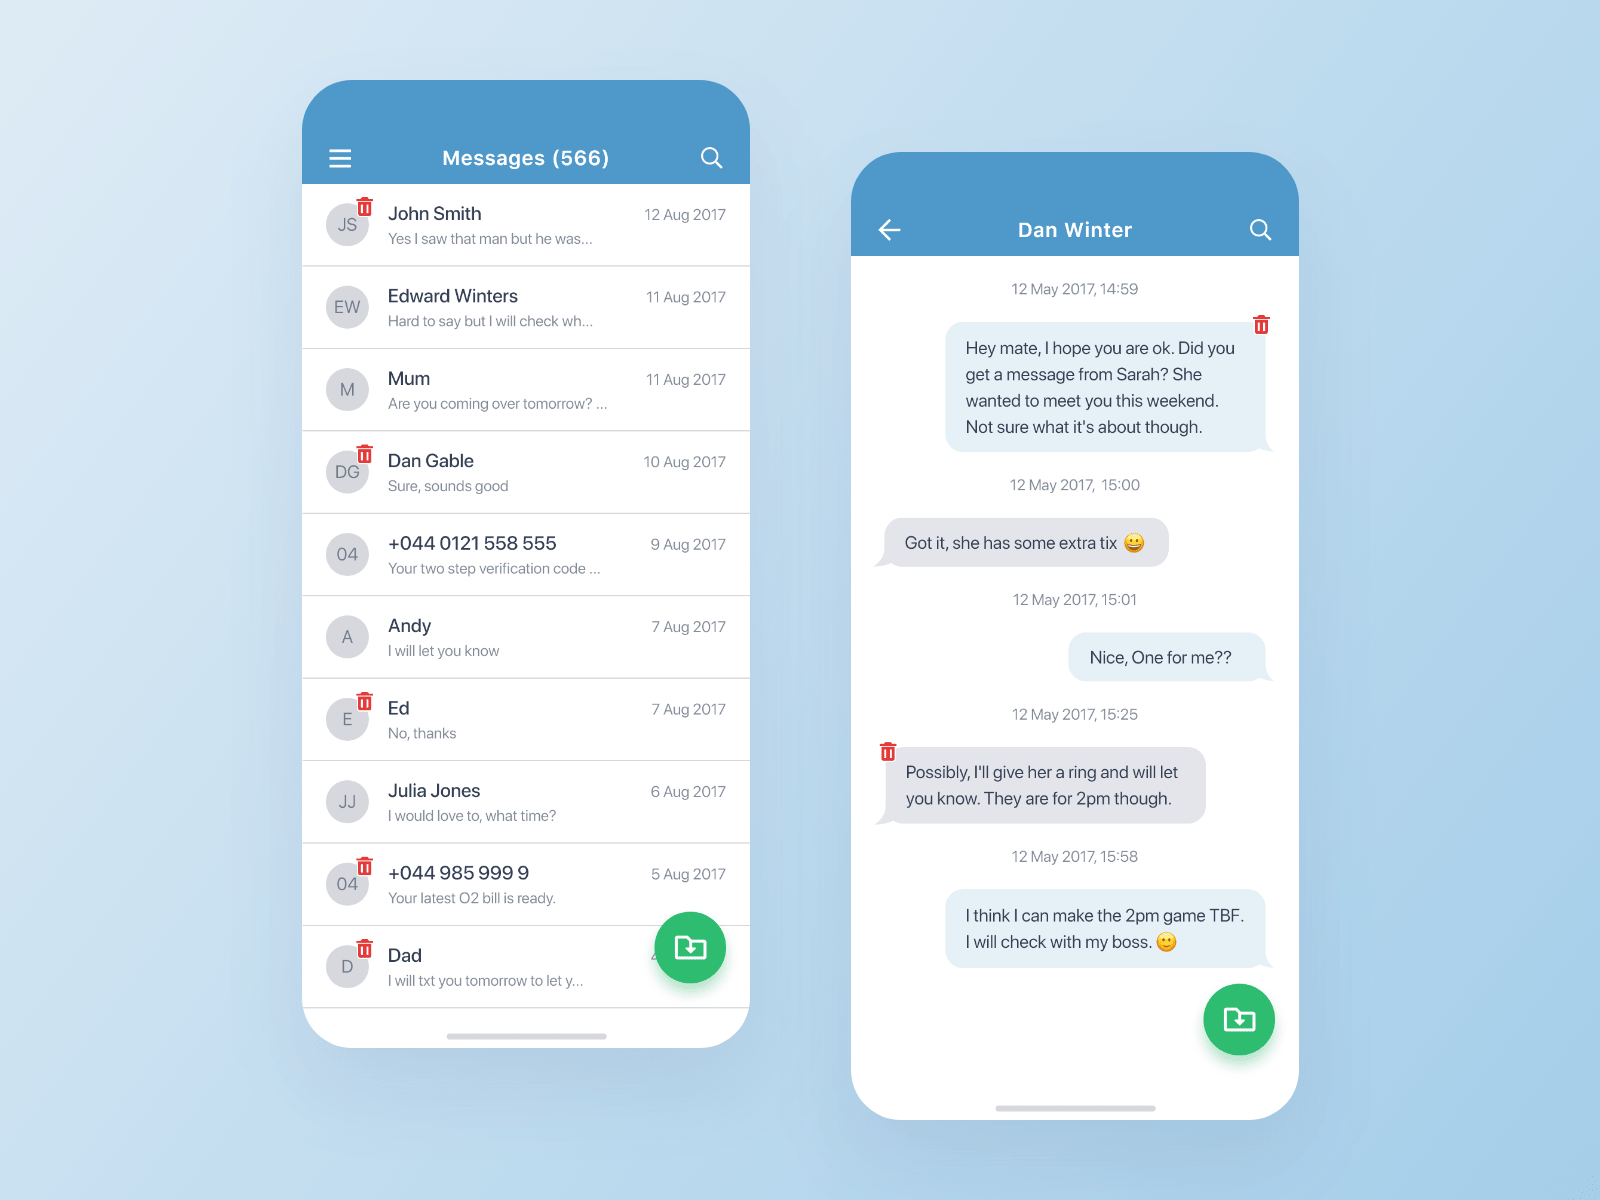 Recovered messages